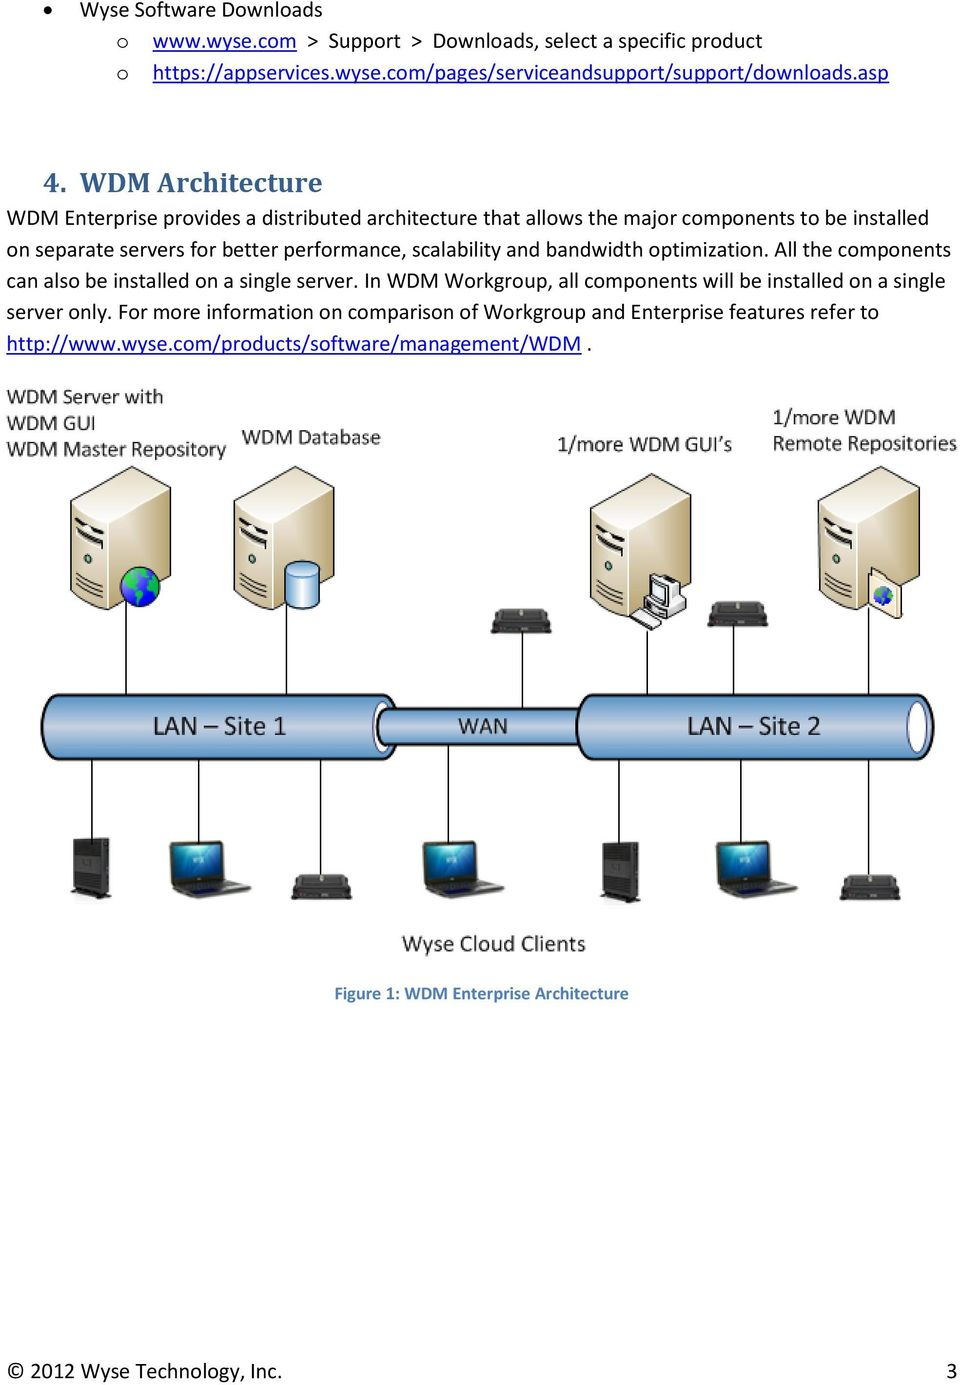 bandwidth optimization. All the components can also be installed on a single server. In WDM Workgroup, all components will be installed on a single server only.